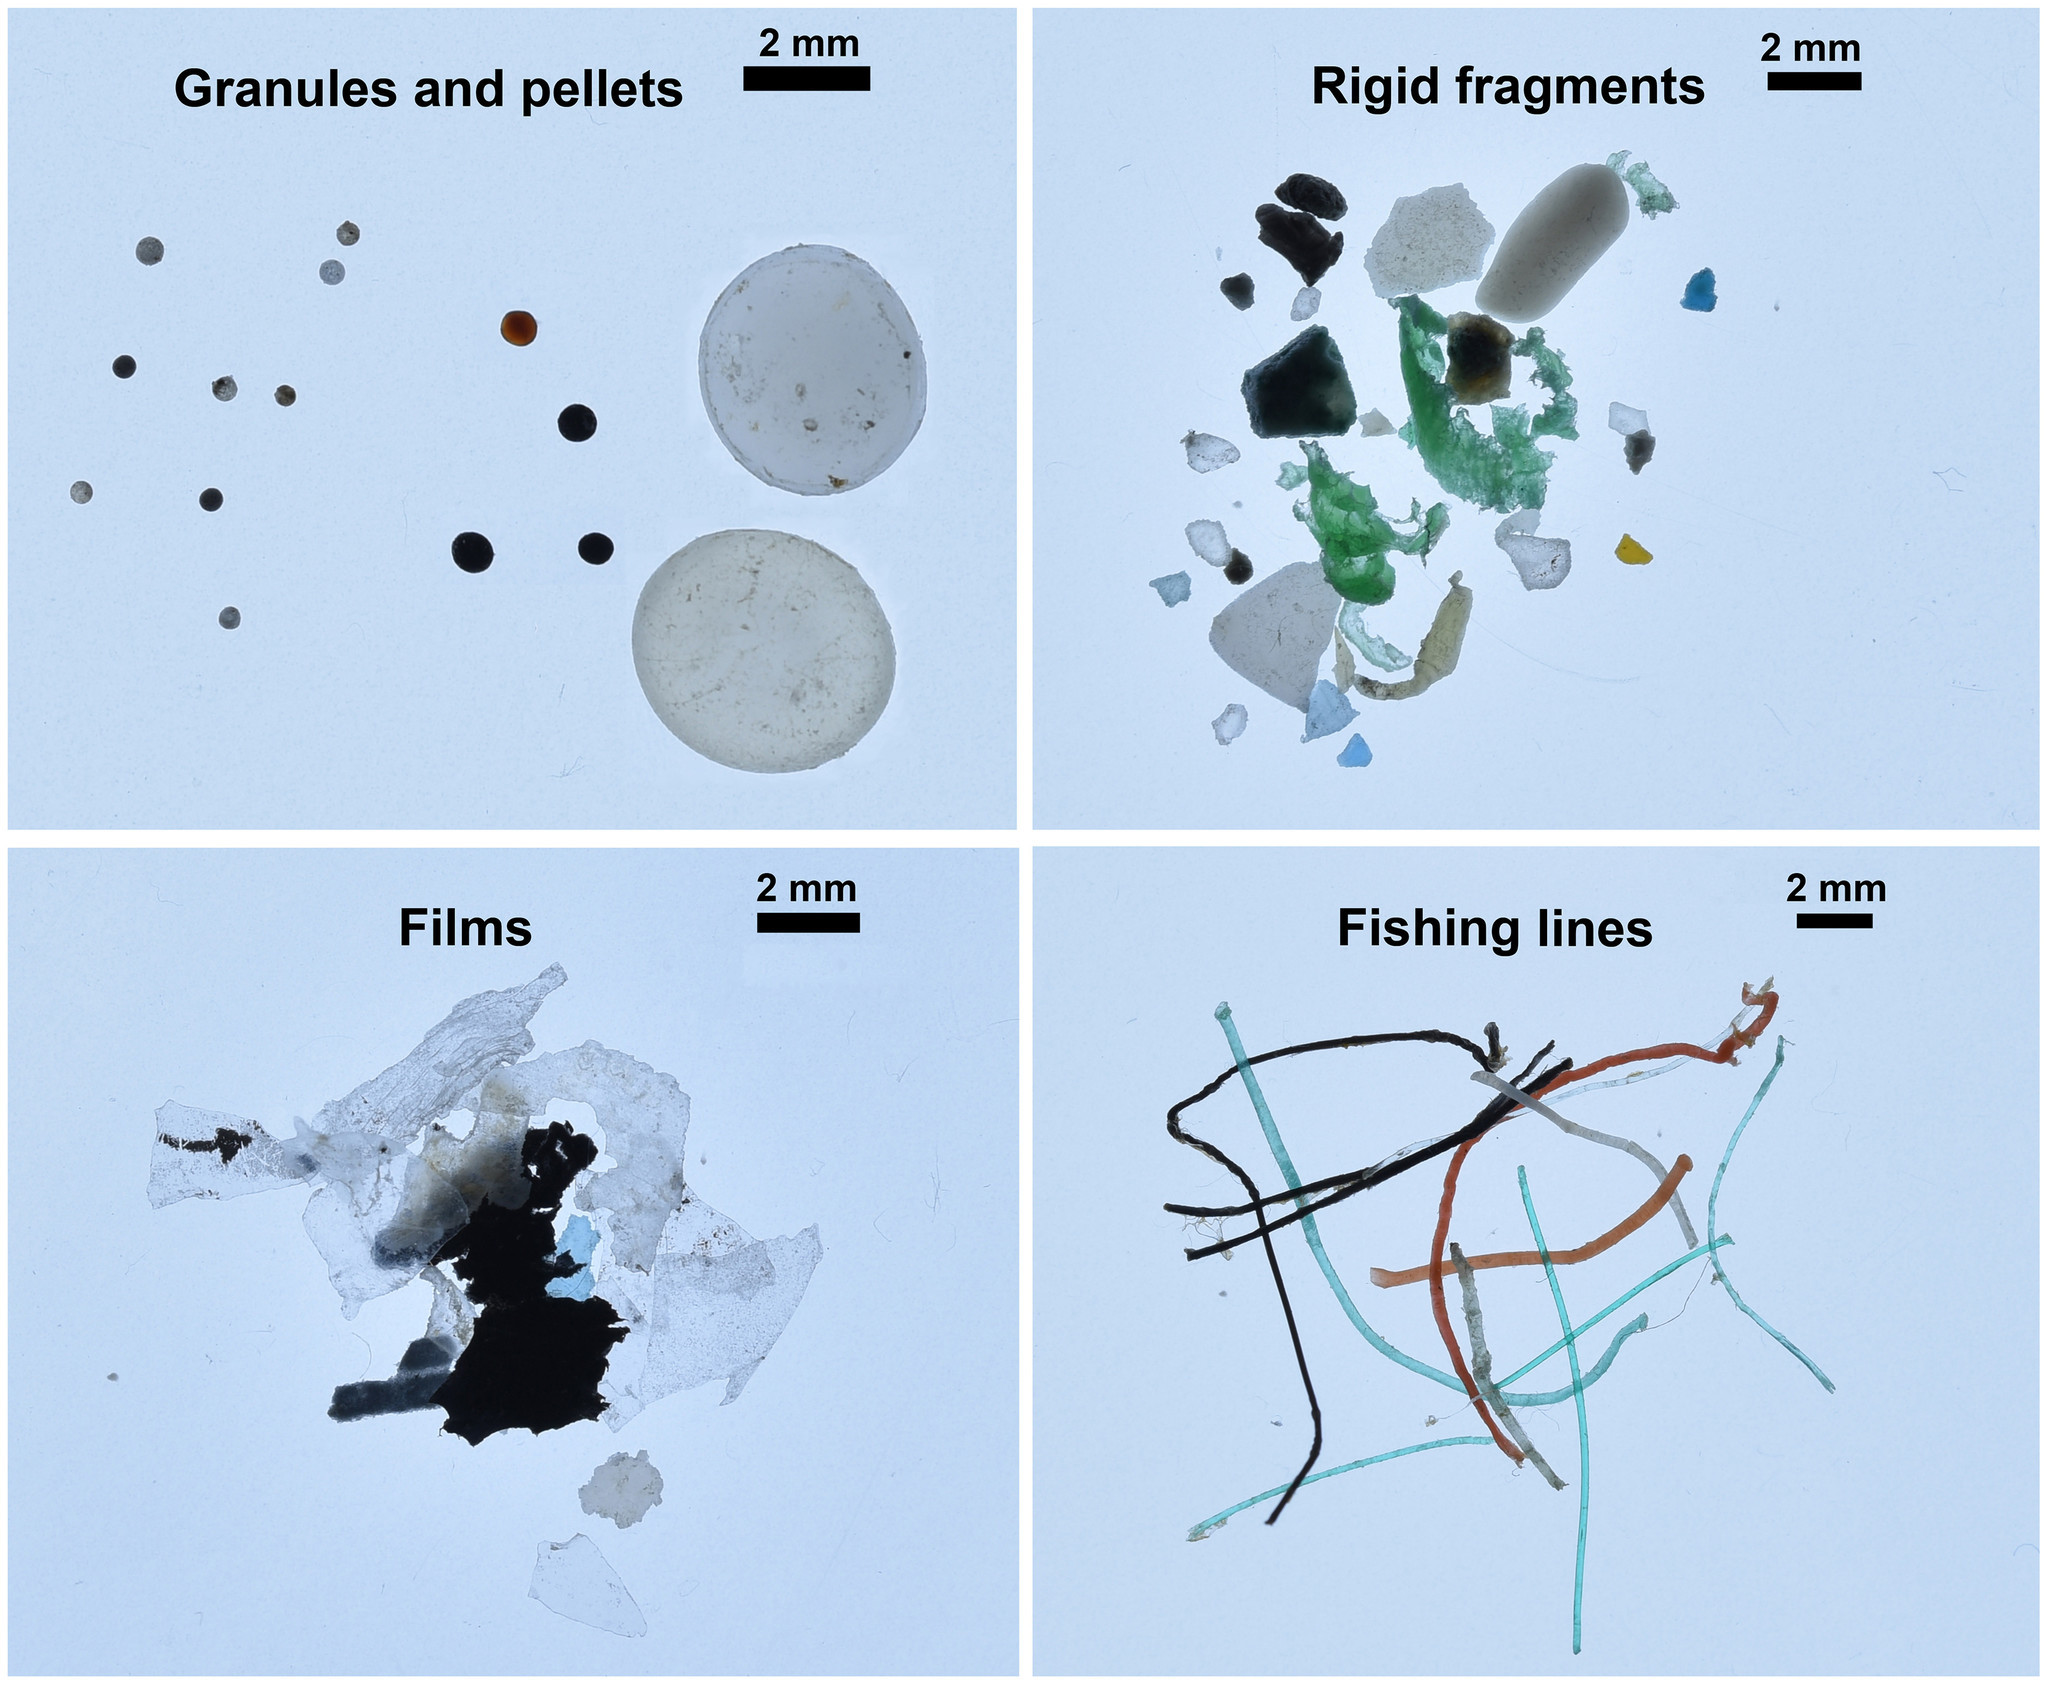 The different categories of microplastics found in the Arctic Ocean.